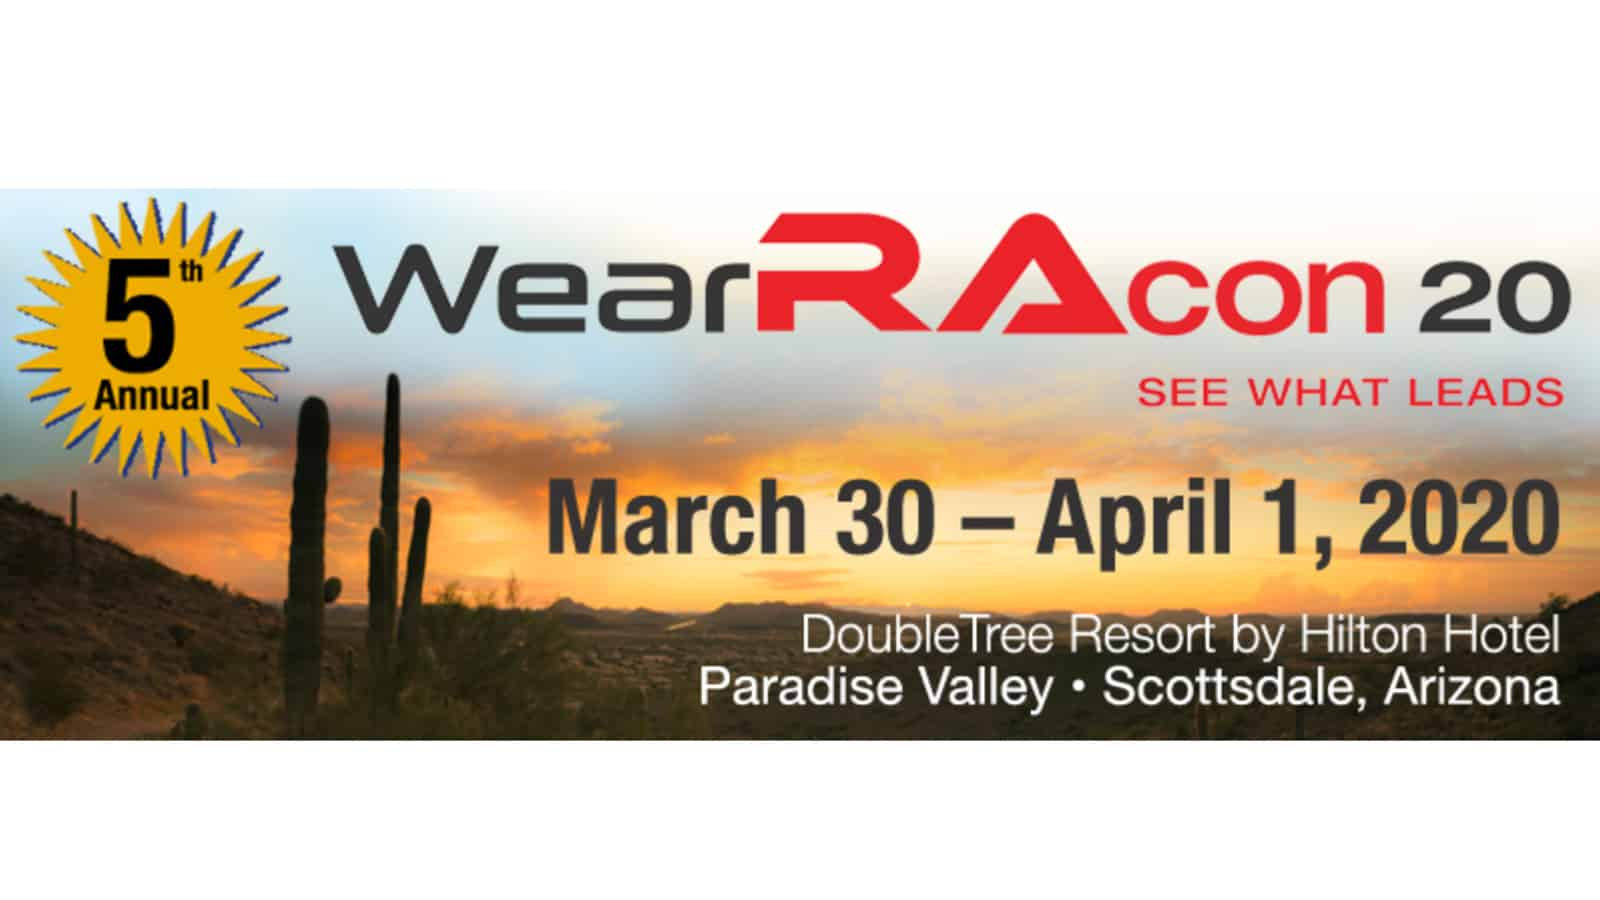 WearRAcon 20 Banner Image